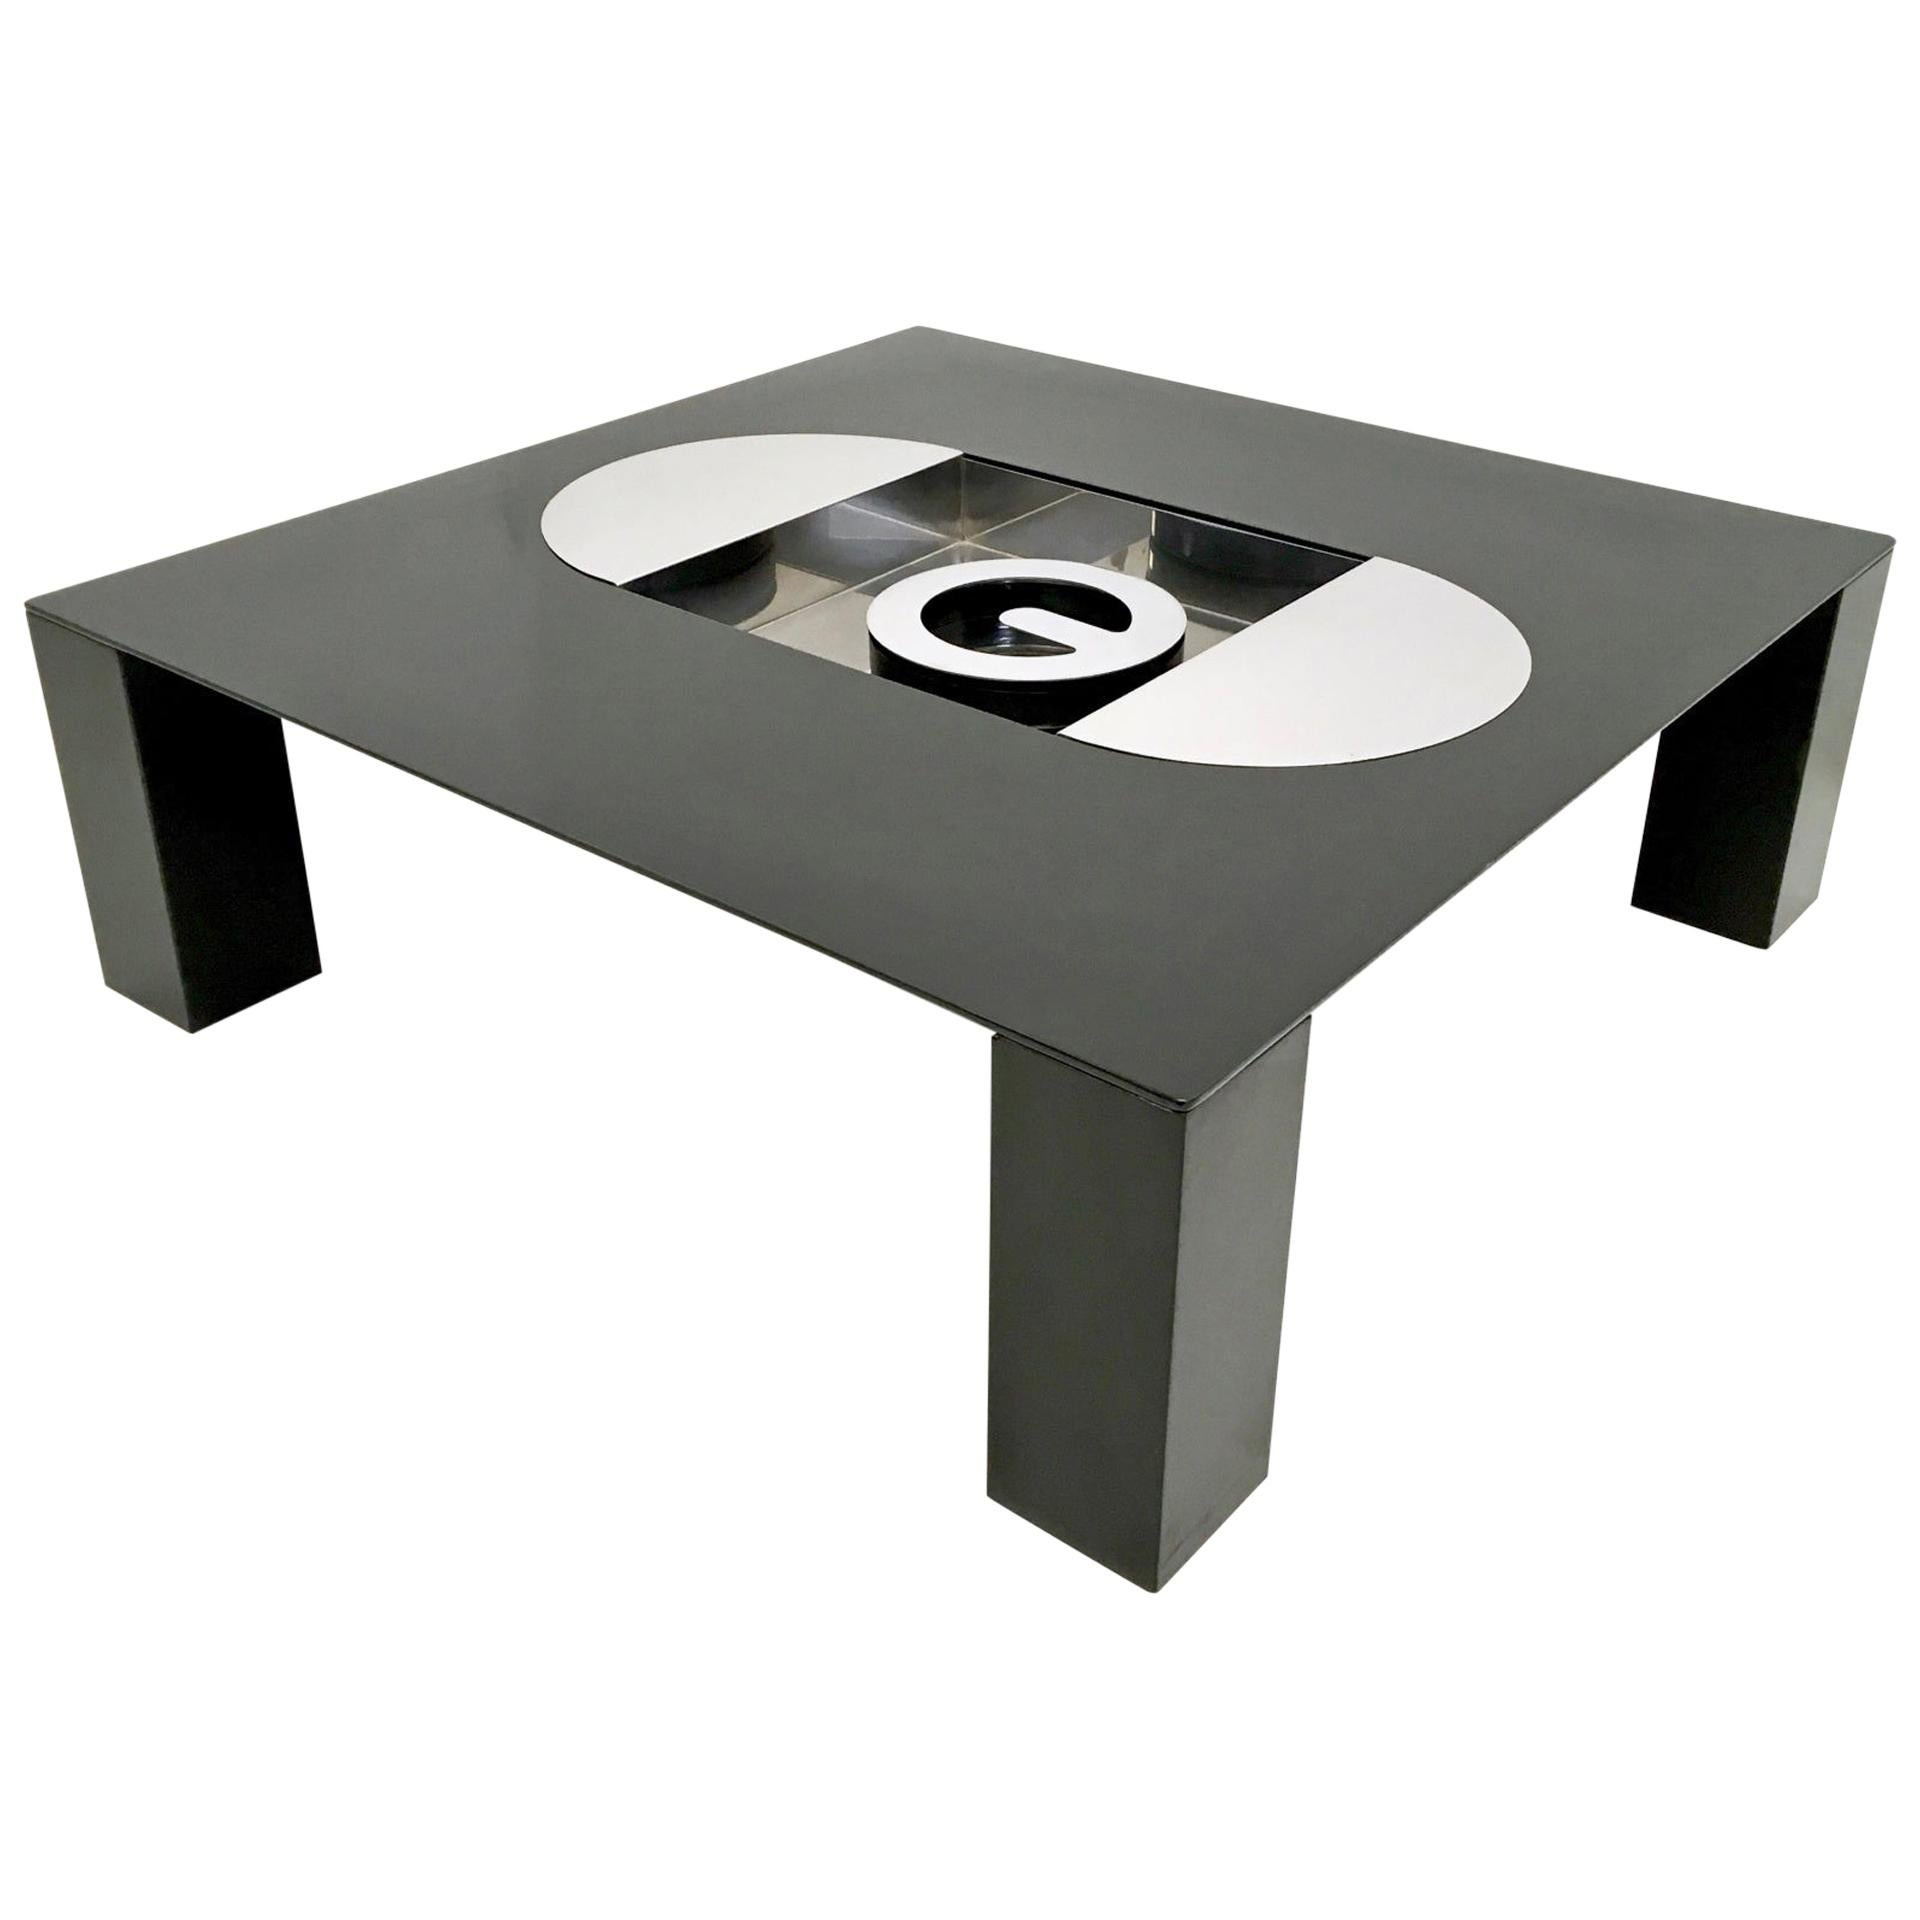 Tebe Coffee Table with Ashray by Giovanni Offredi Produced by Saporiti, 1970s